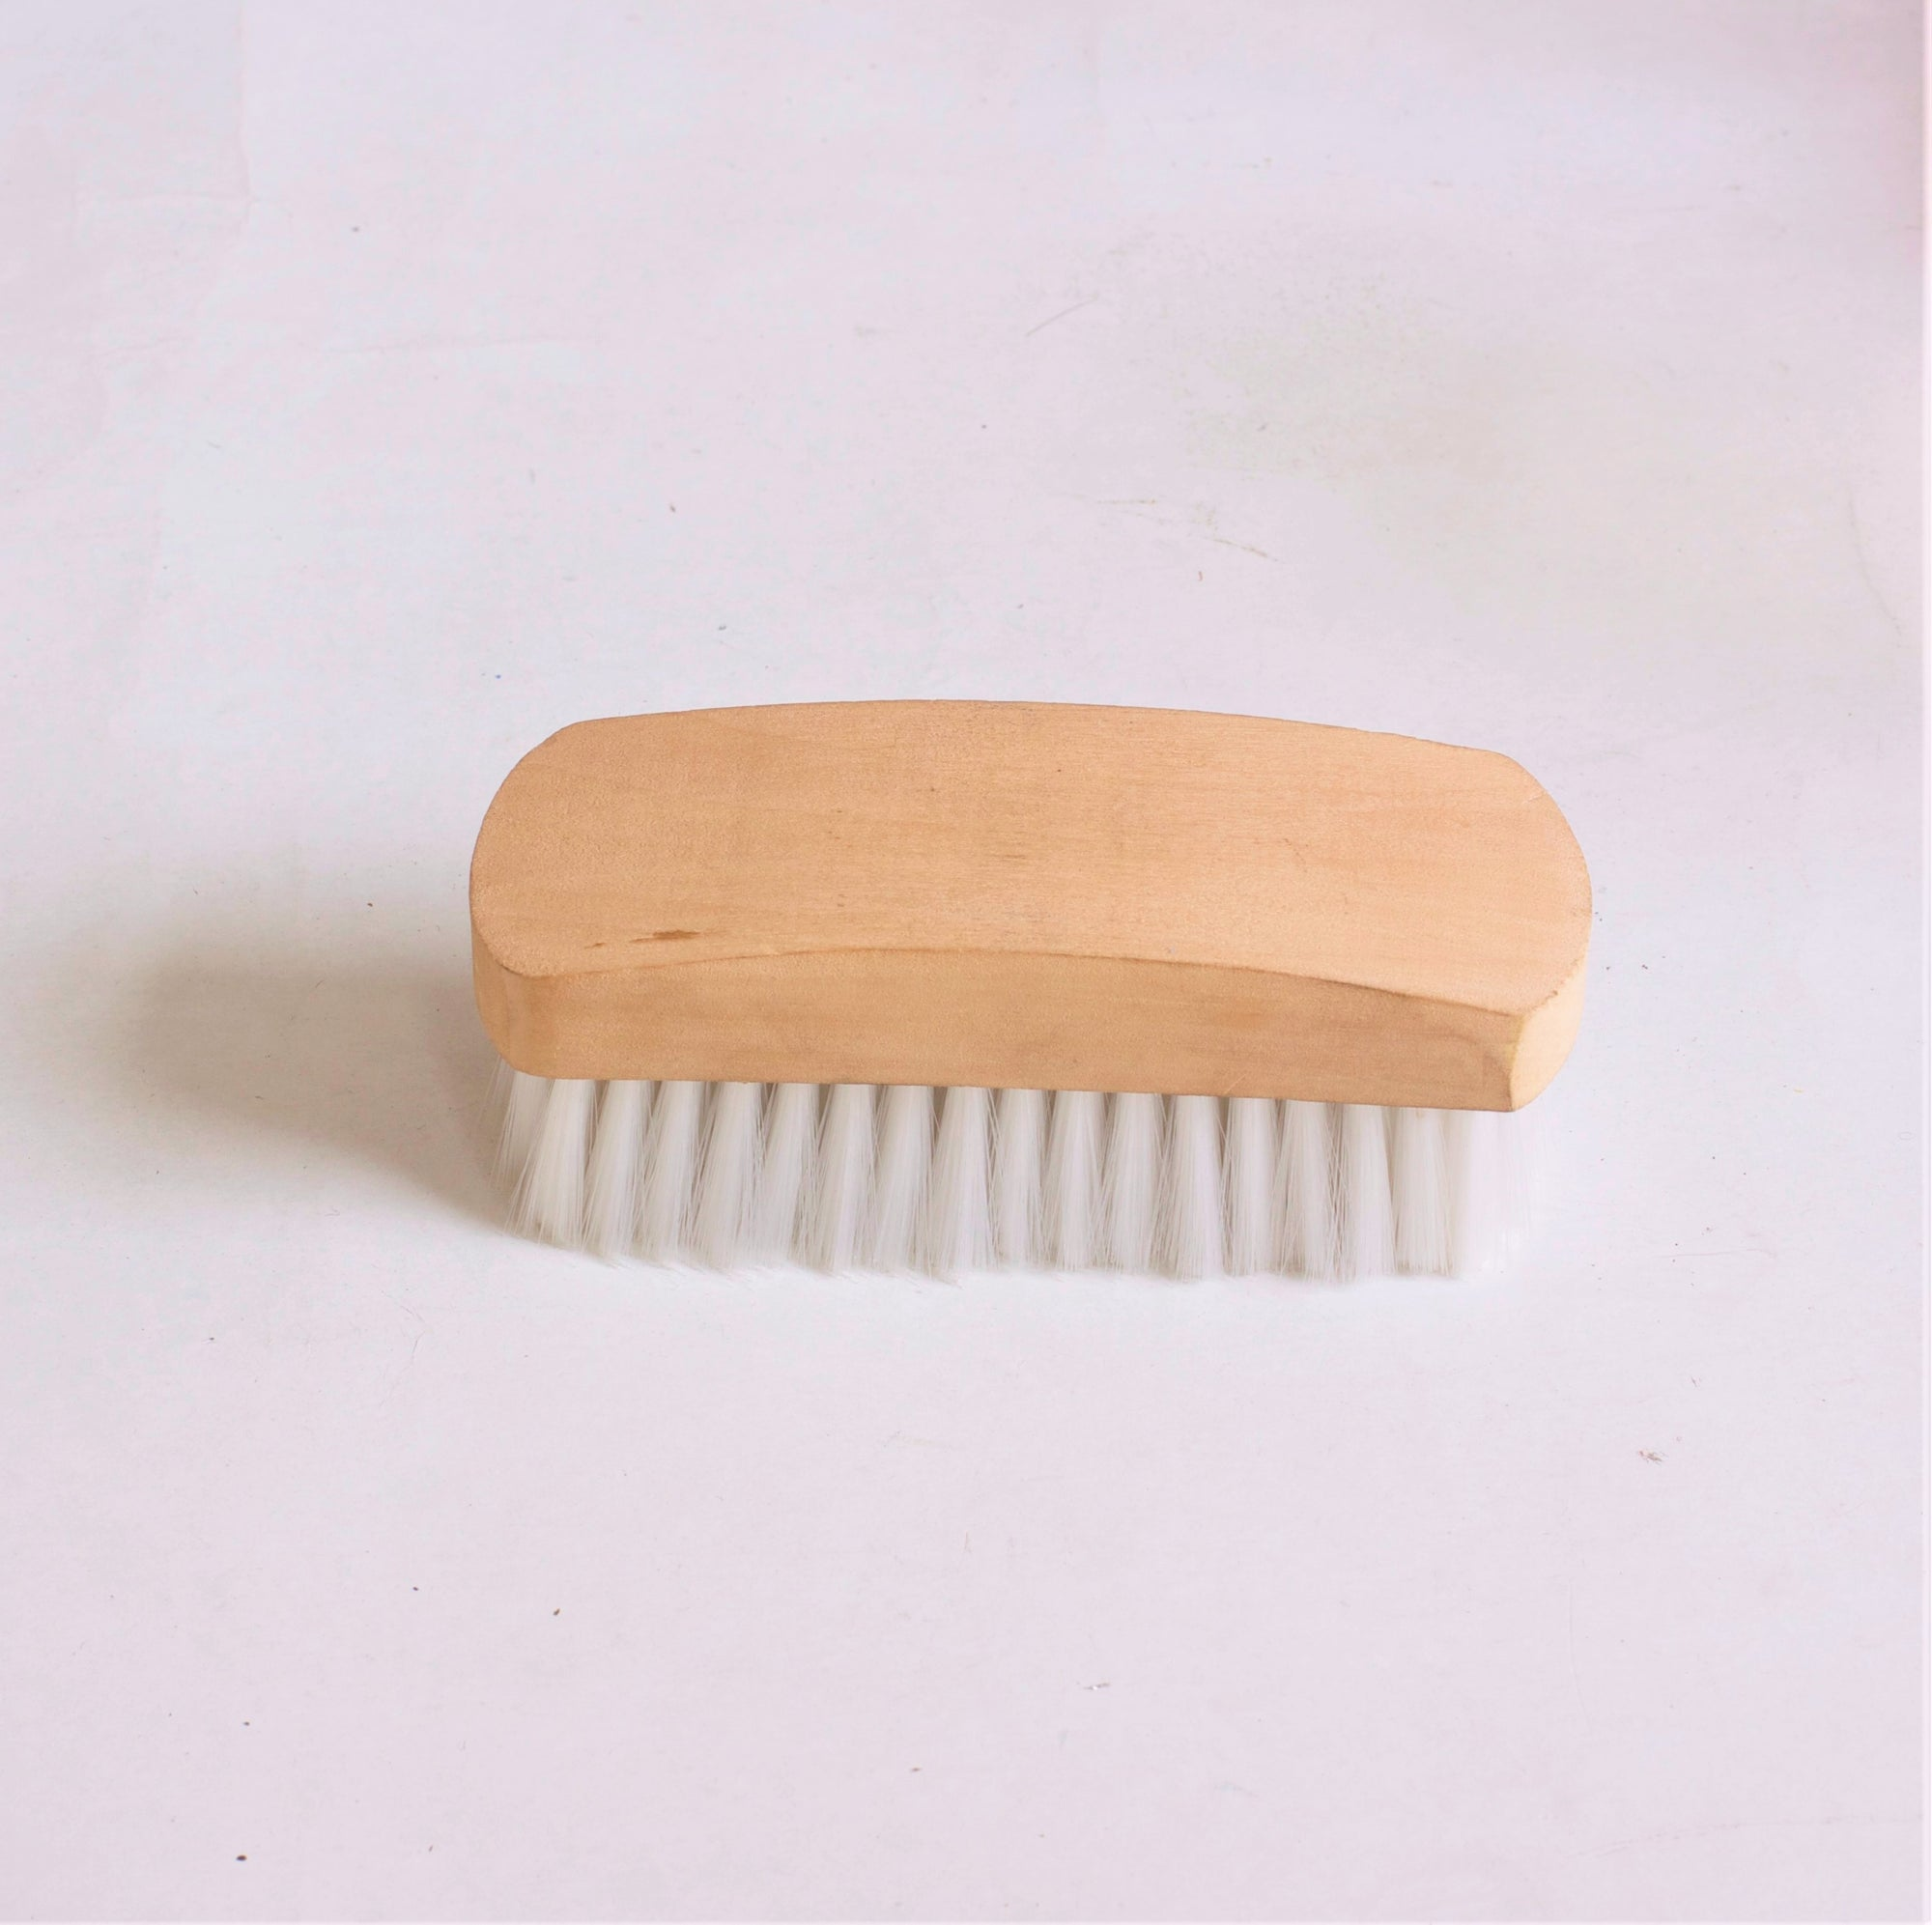 Tuffrider Face Brush With Wooden Grip - Breeches.com